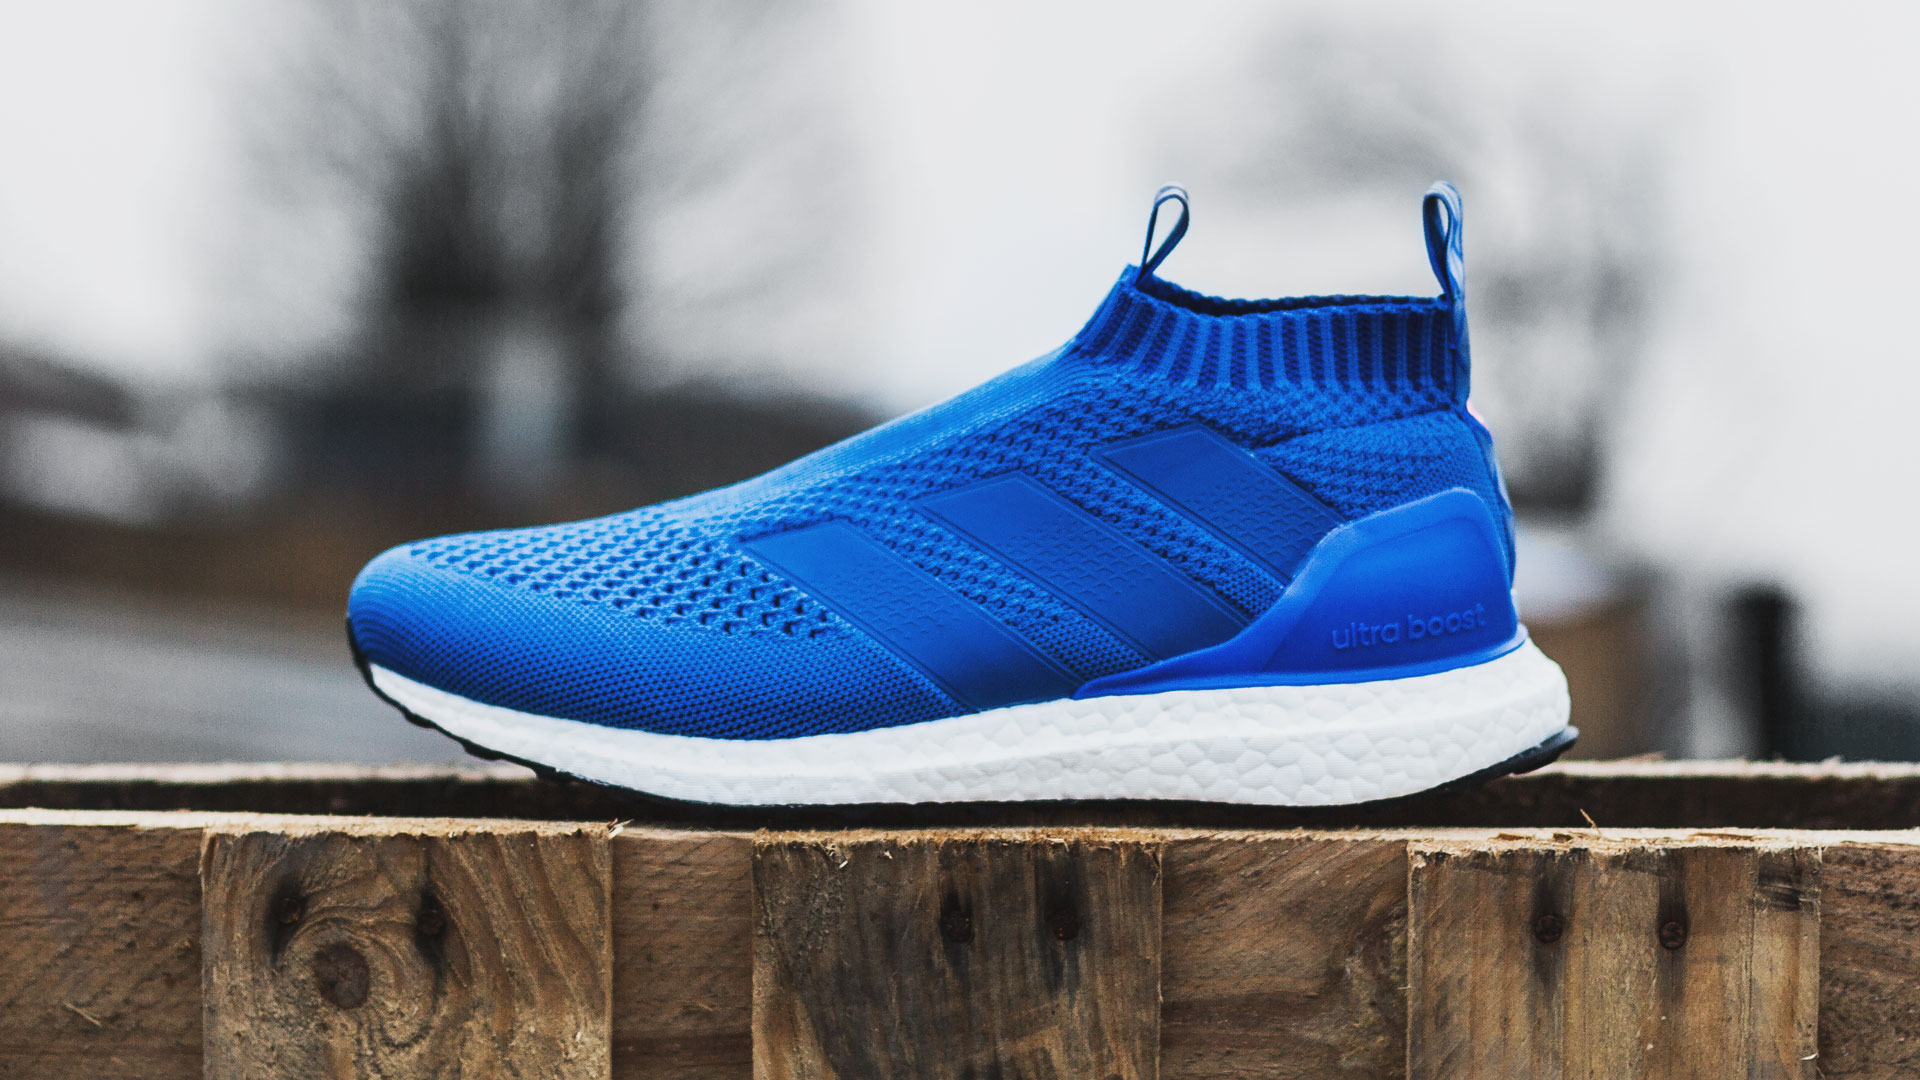 ACE 16+ Purecontrol ULTRABOOST Shoes